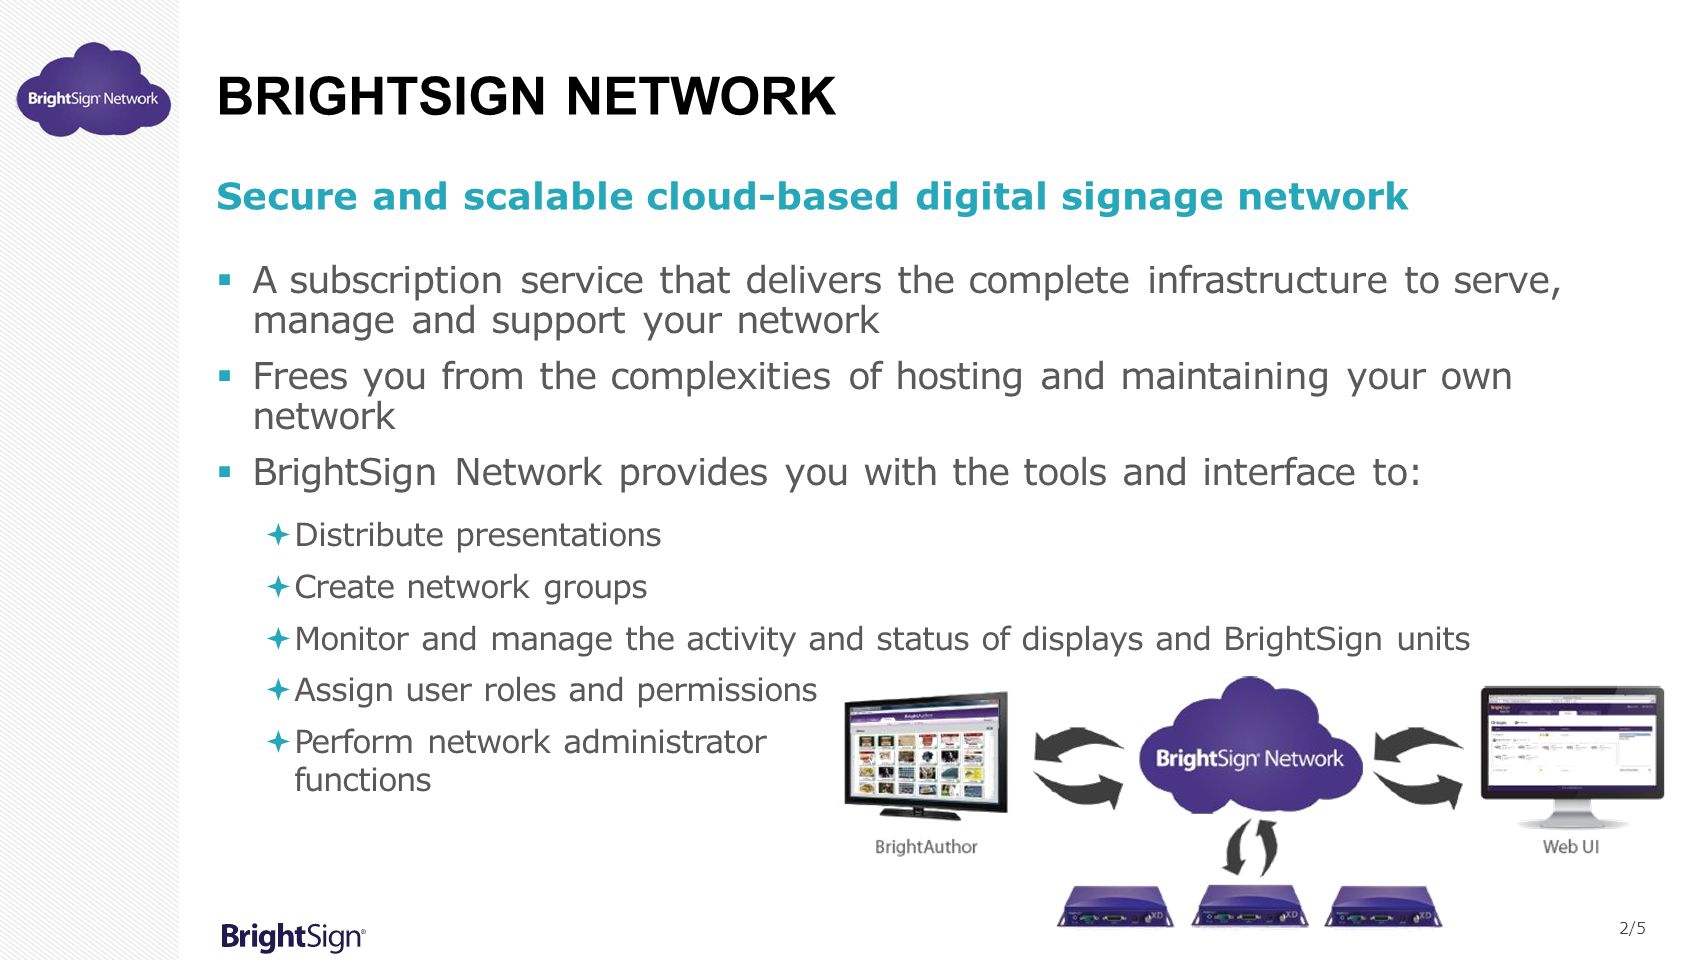 BrightSign Network Secure and scalable cloud-based digital signage network.